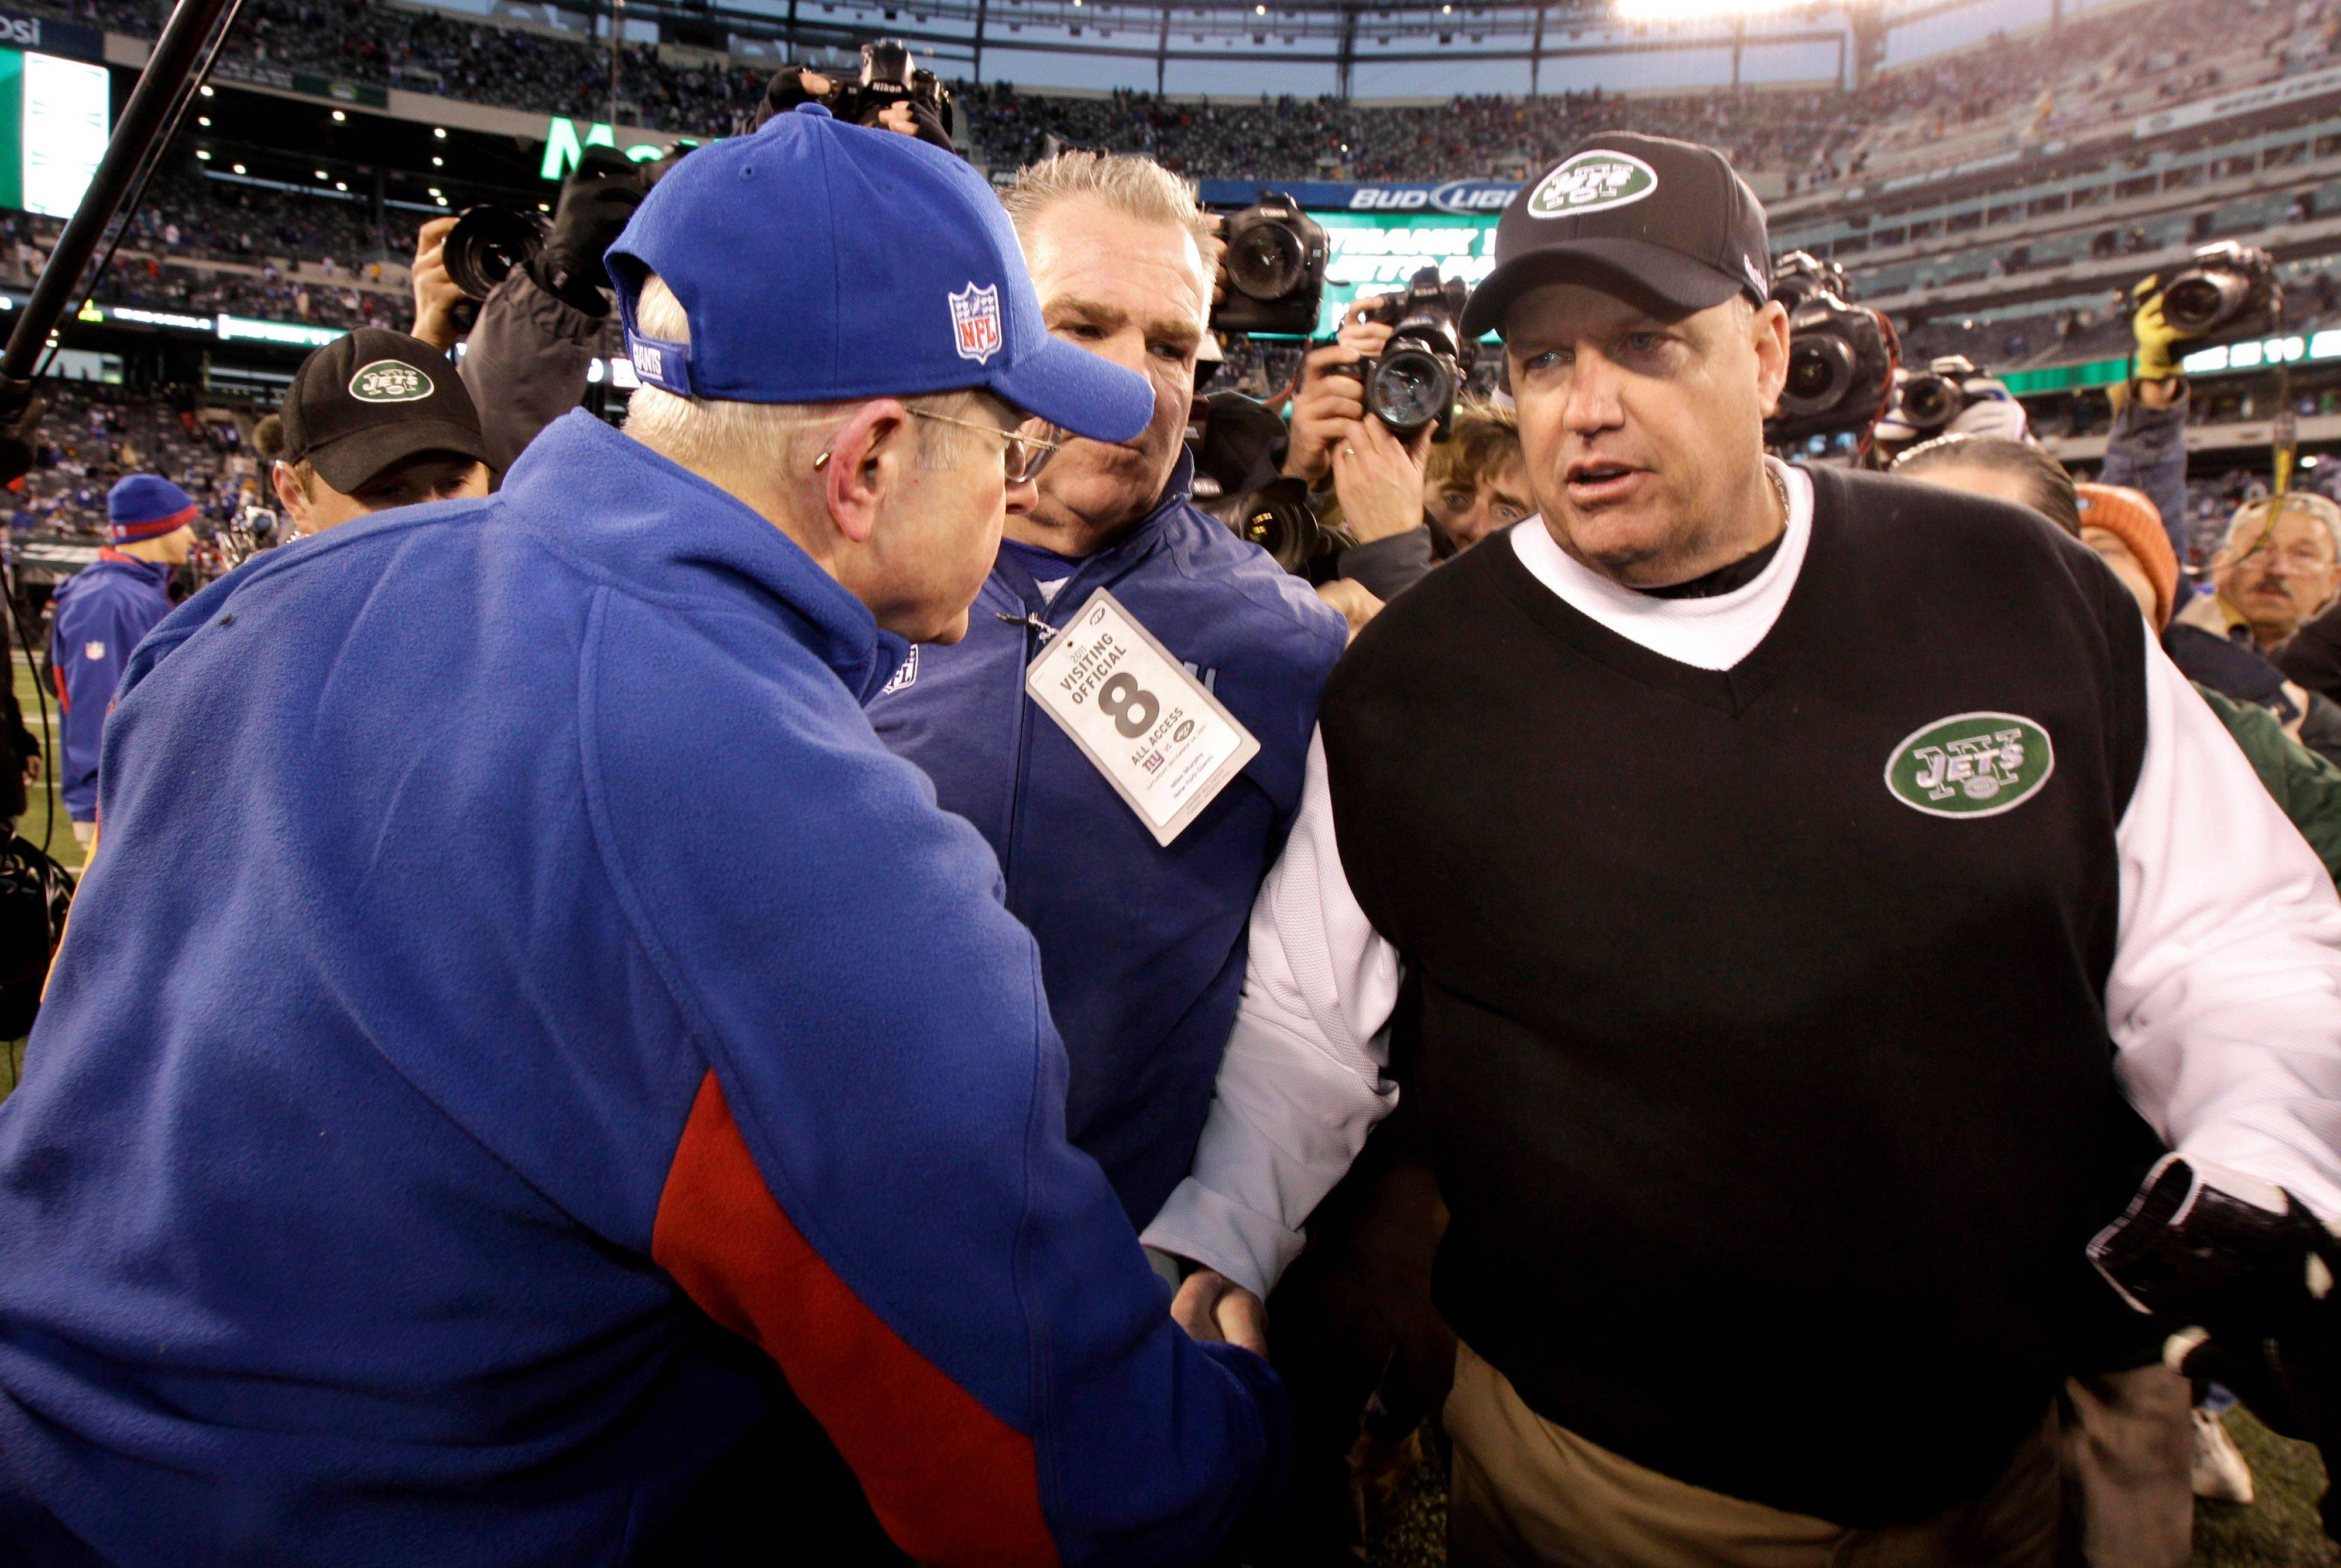 After losing to the Giants and Tom Coughlin, New York Jets head coach Rex Ryan, right, will need a miracle to get his team into the NFL playoffs.